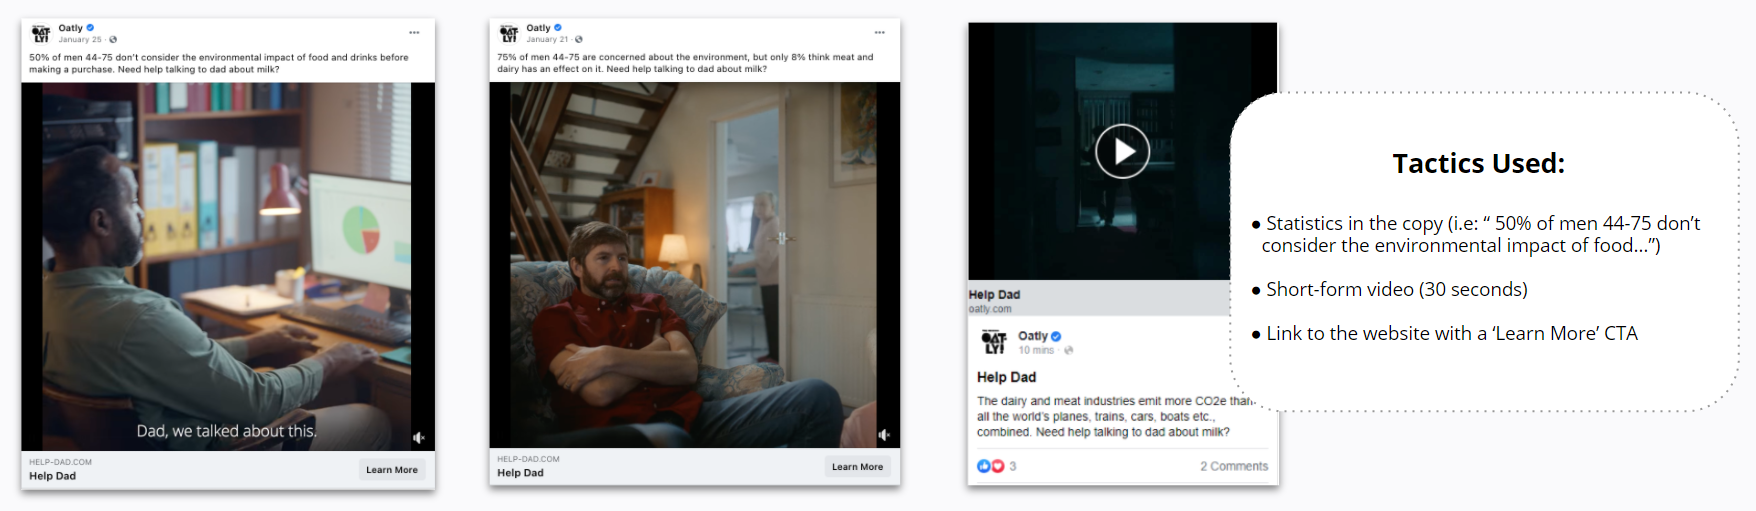 Oatly - Facebook Videos Ads and Tactics Used